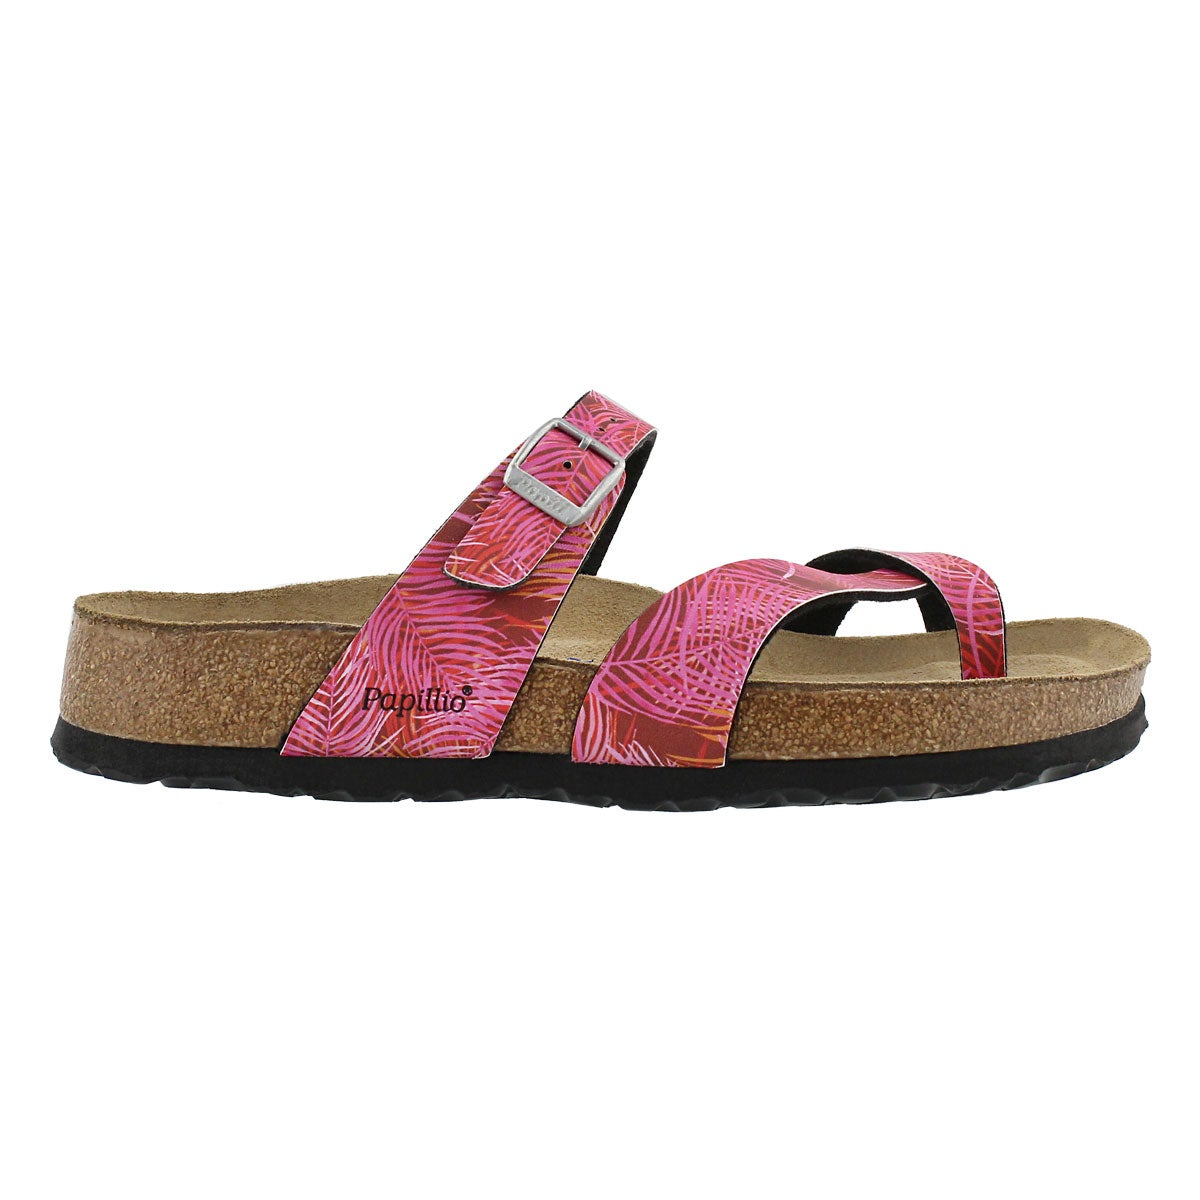 Lds Tabora SF tropical leaf pink sandal